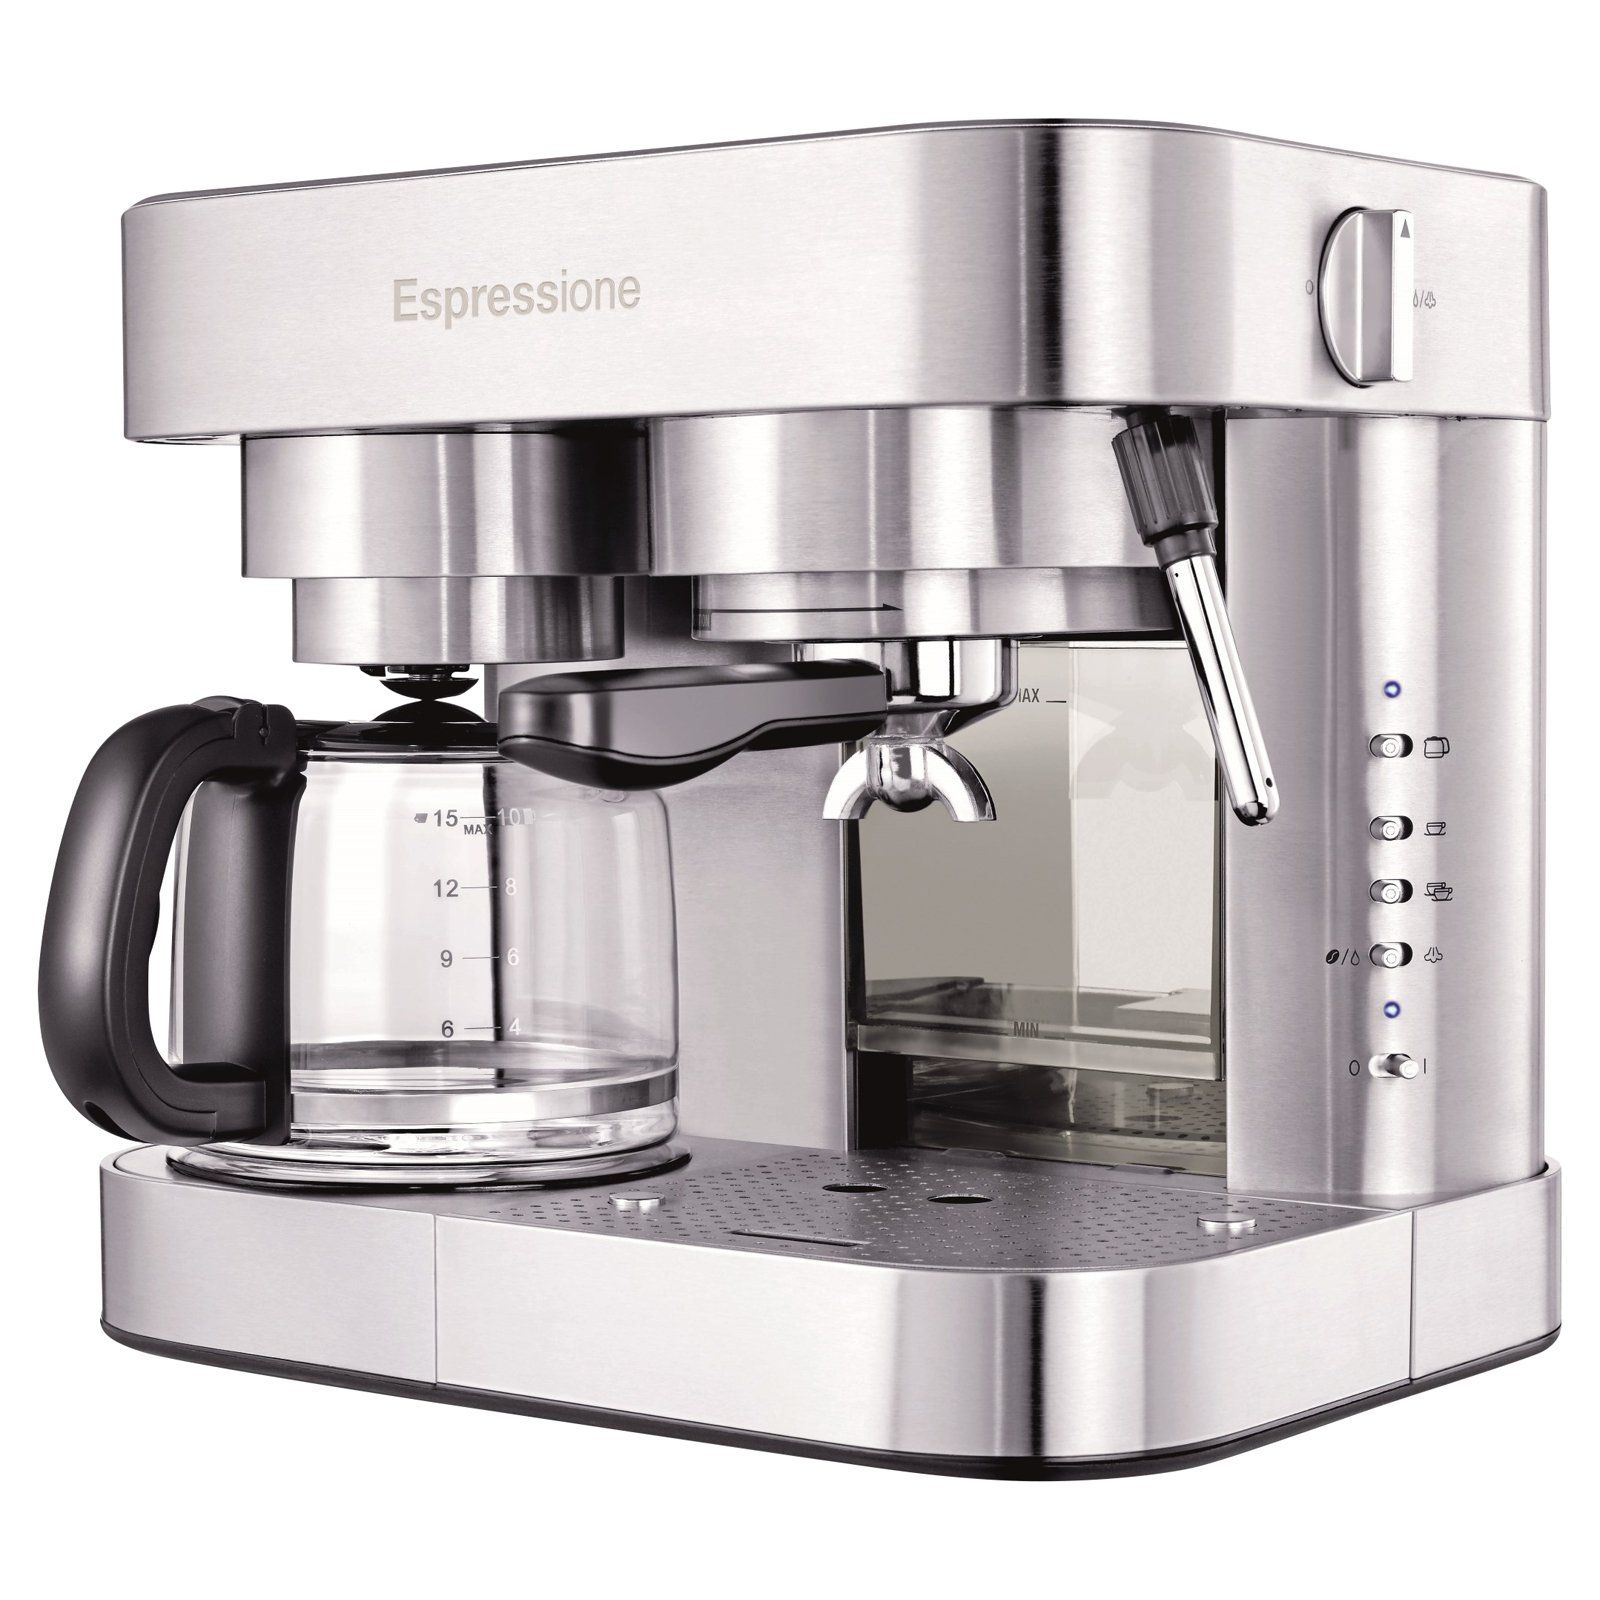 Espressione EM1040 Combination Espresso and Coffee Maker